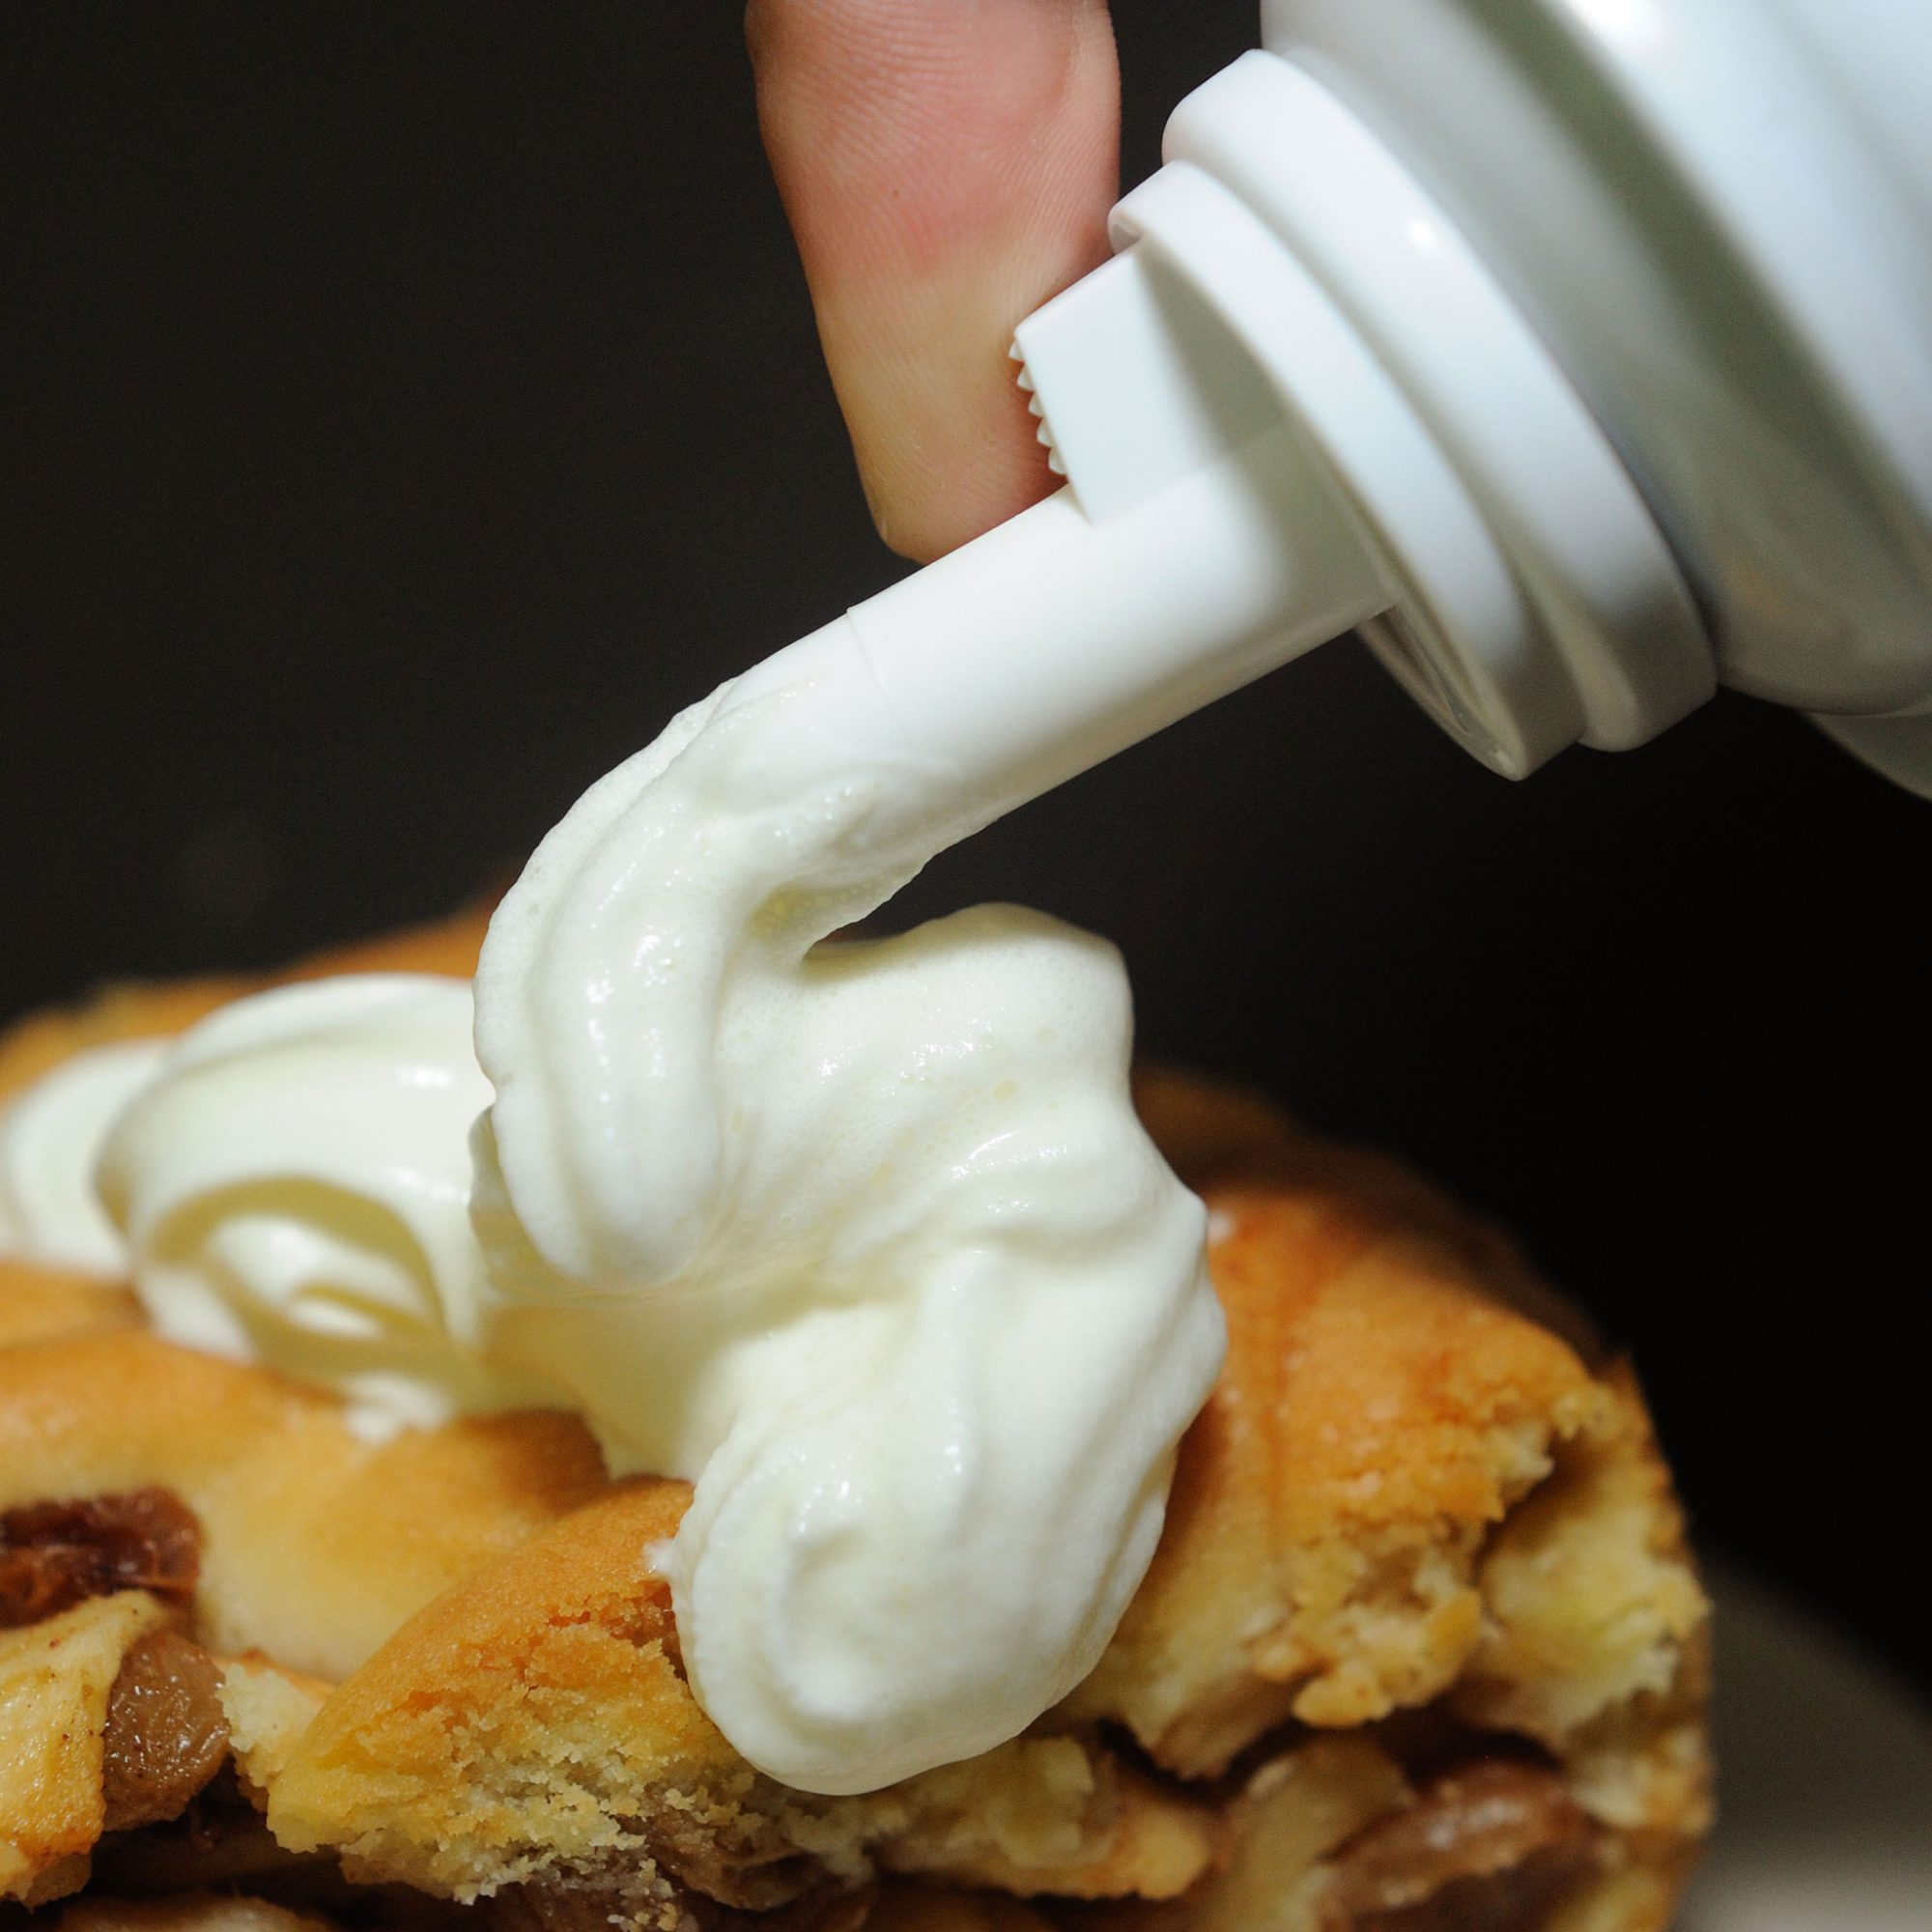 FWX DANGER IN PROCESSED FOOD